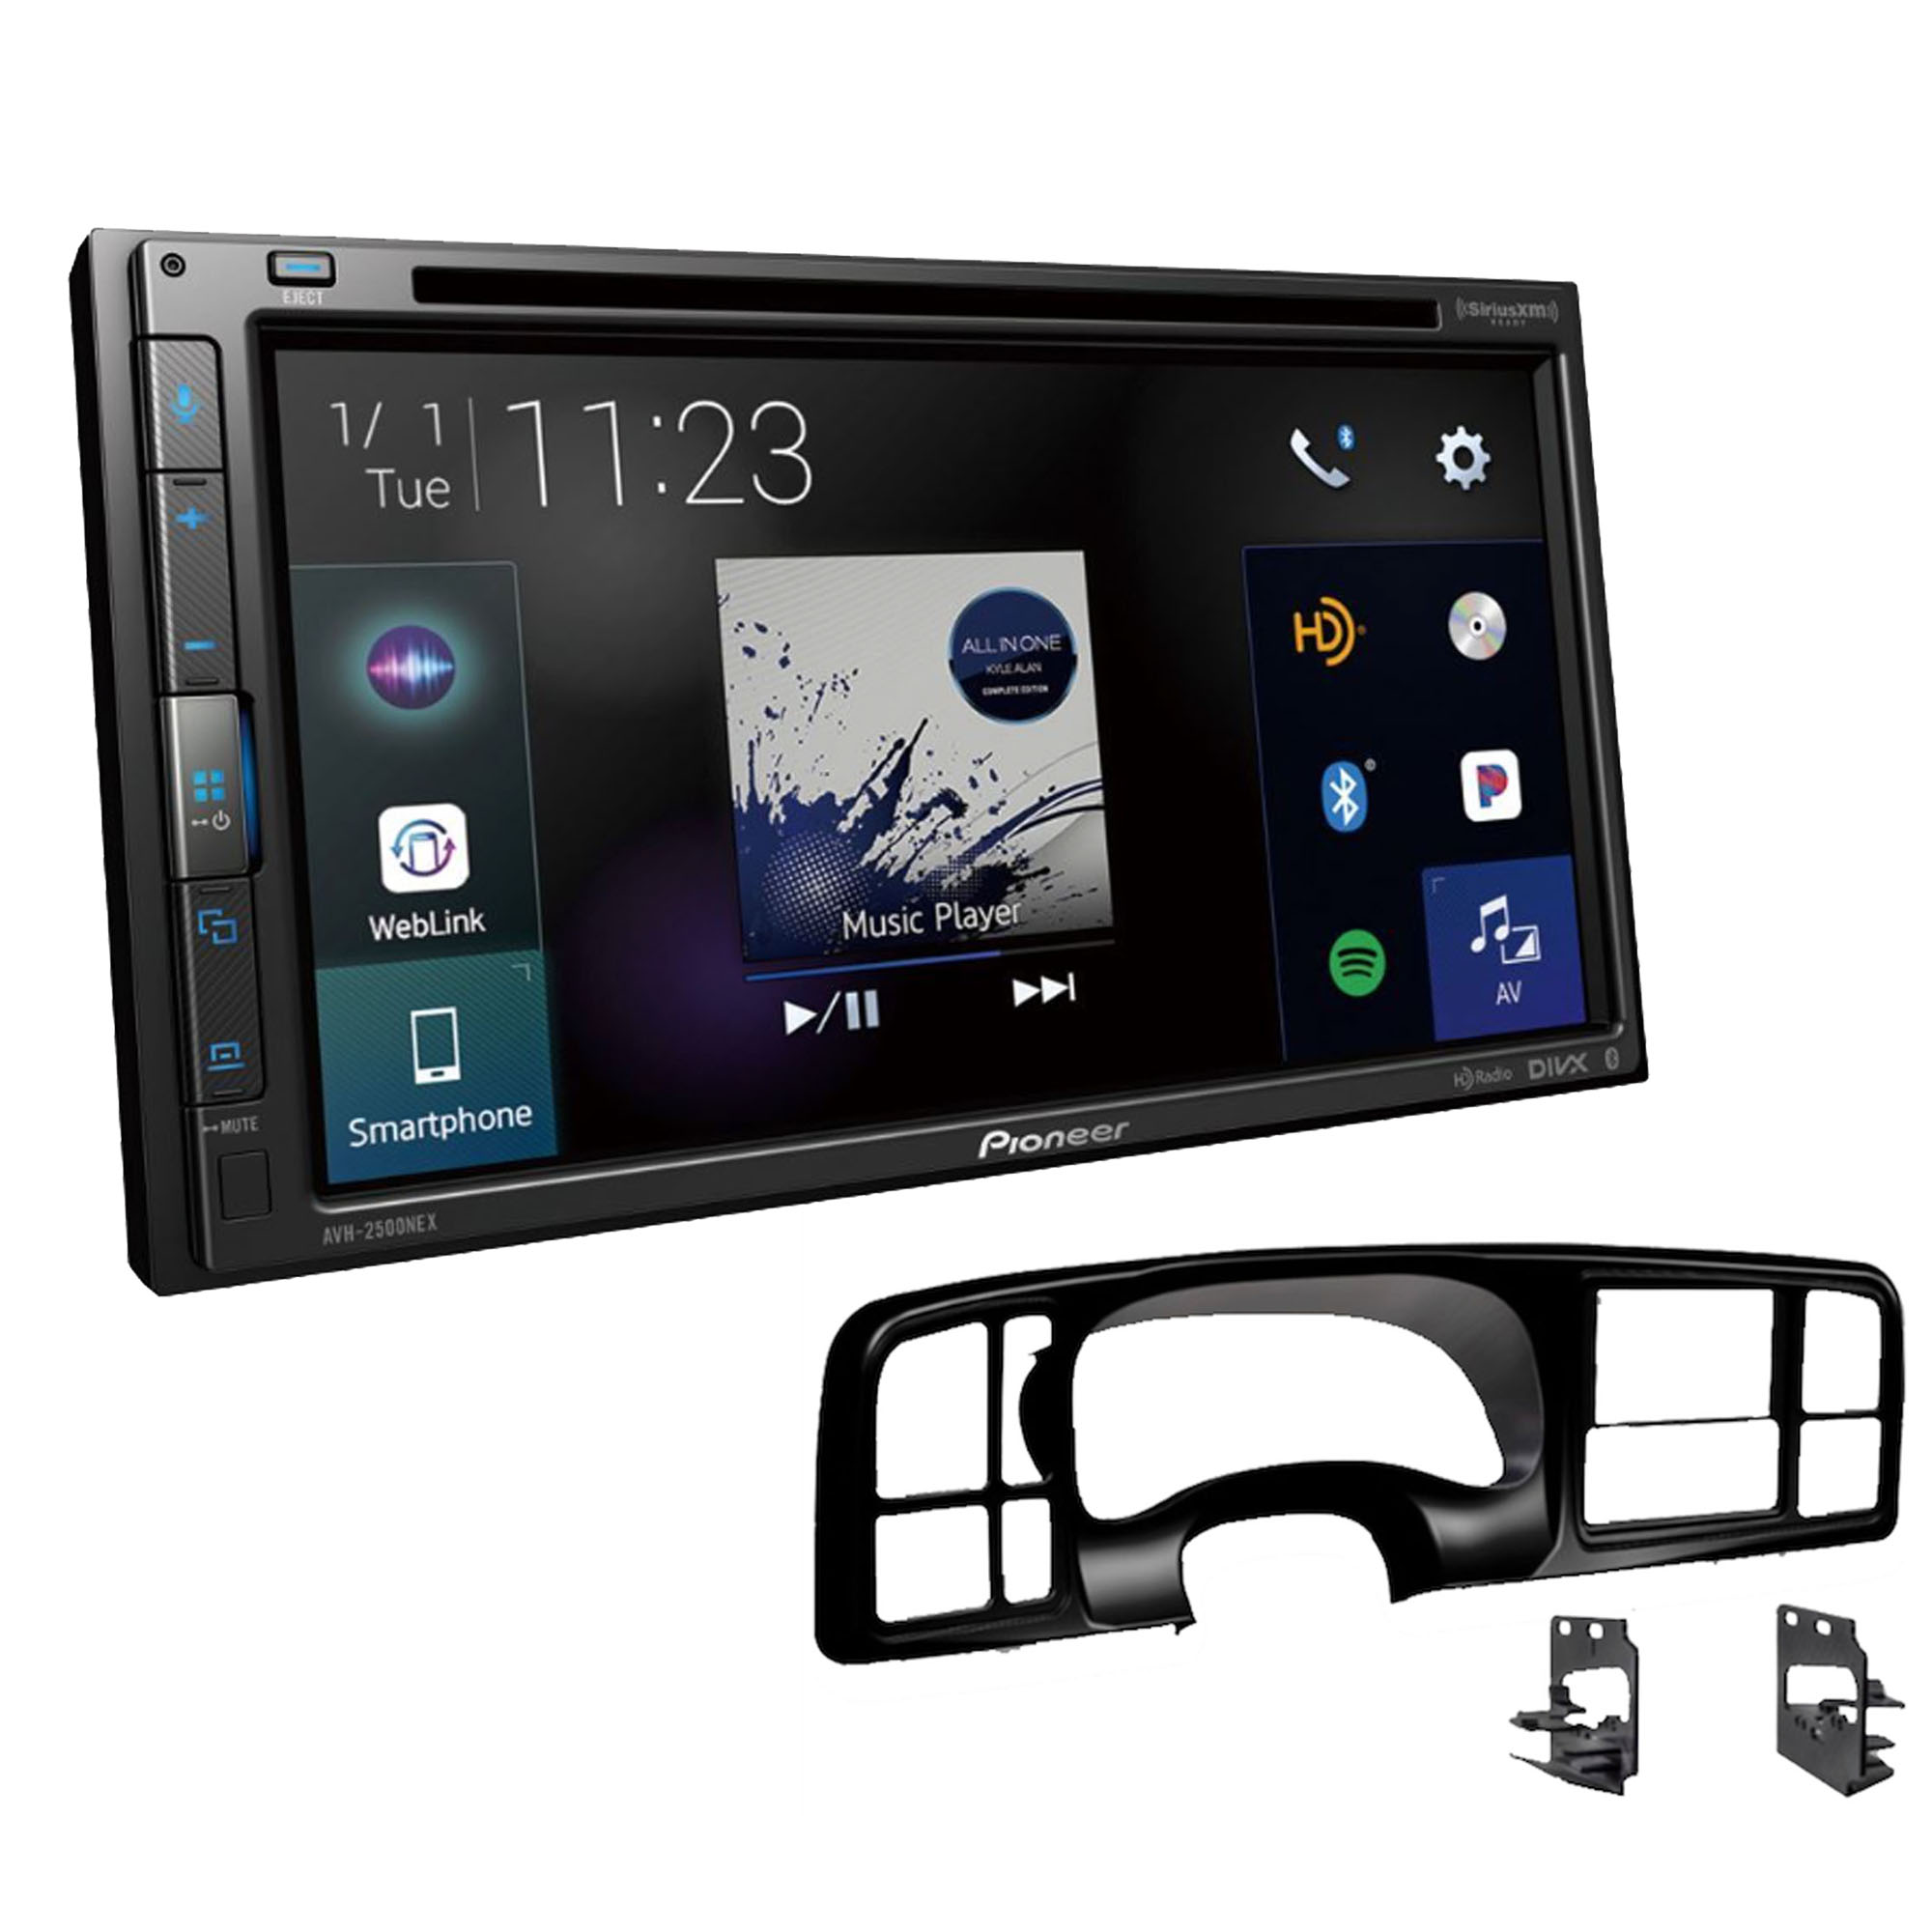 Metra DP-3002B Black Double DIN Dash Kit for Select 99-02 GM Full-Size Truck SUV